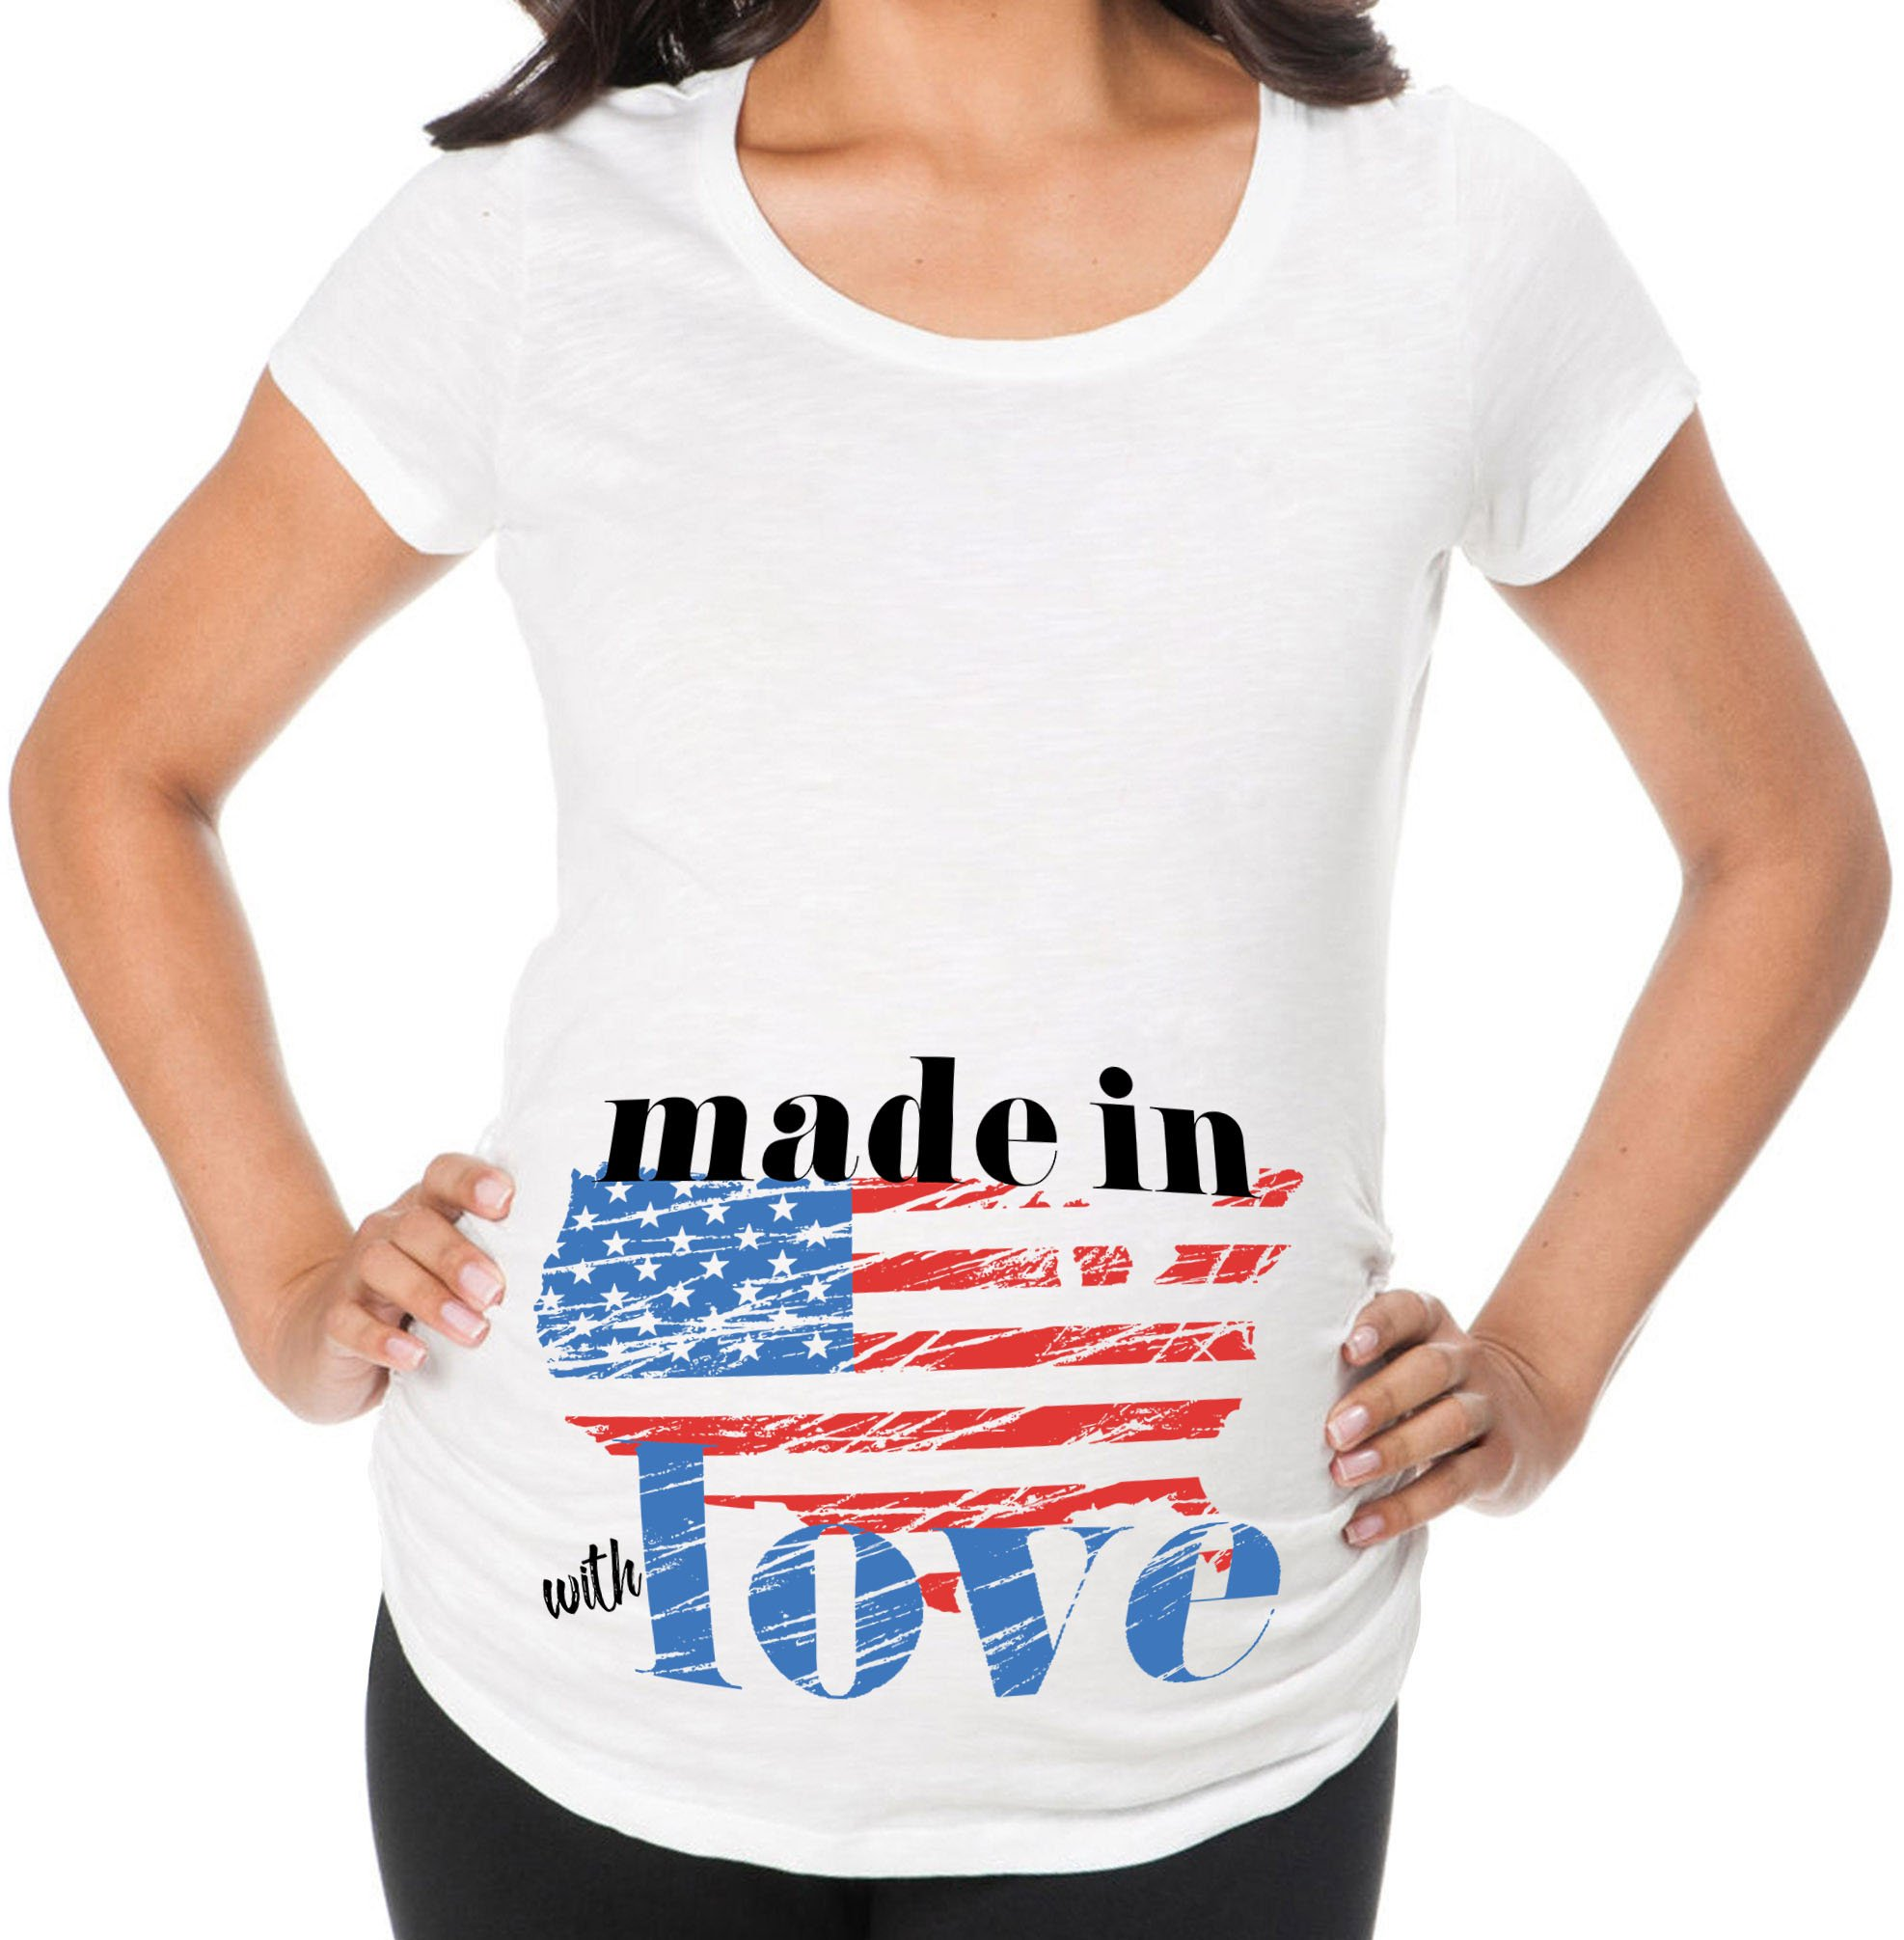 Awkward Styles Made in America with Love Cool Pregnancy Announcement Maternity T Shirt USA Flag White 2XL